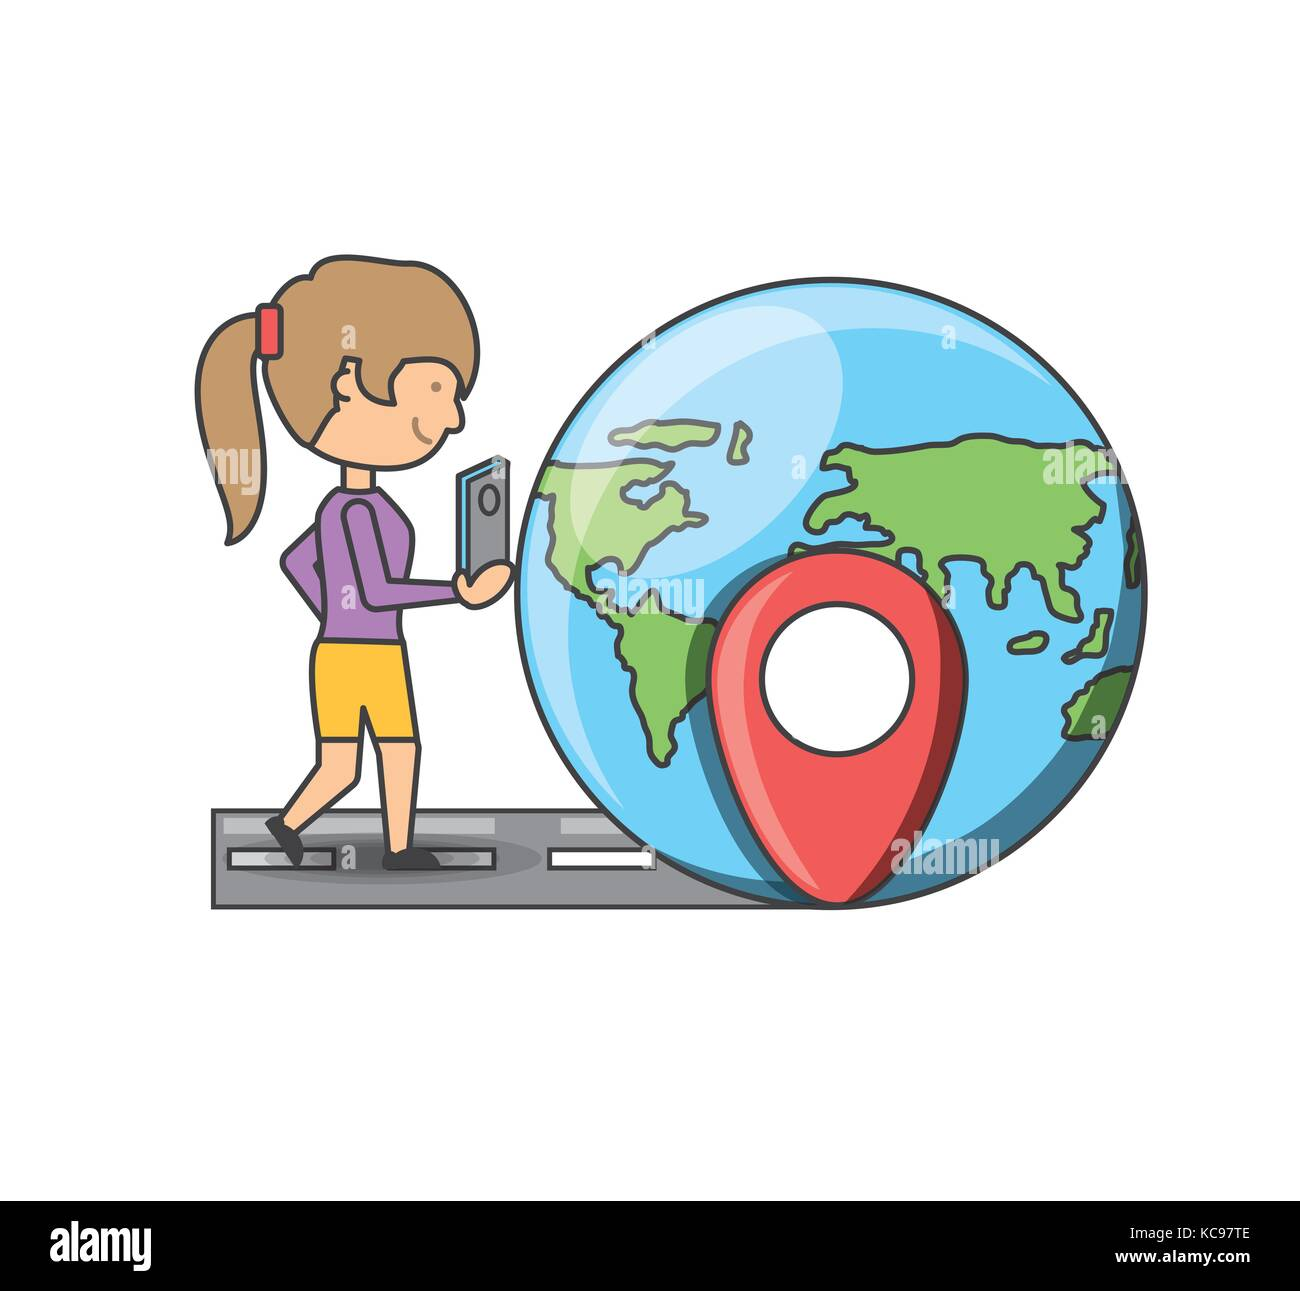 Travel and navigation design - Stock Image